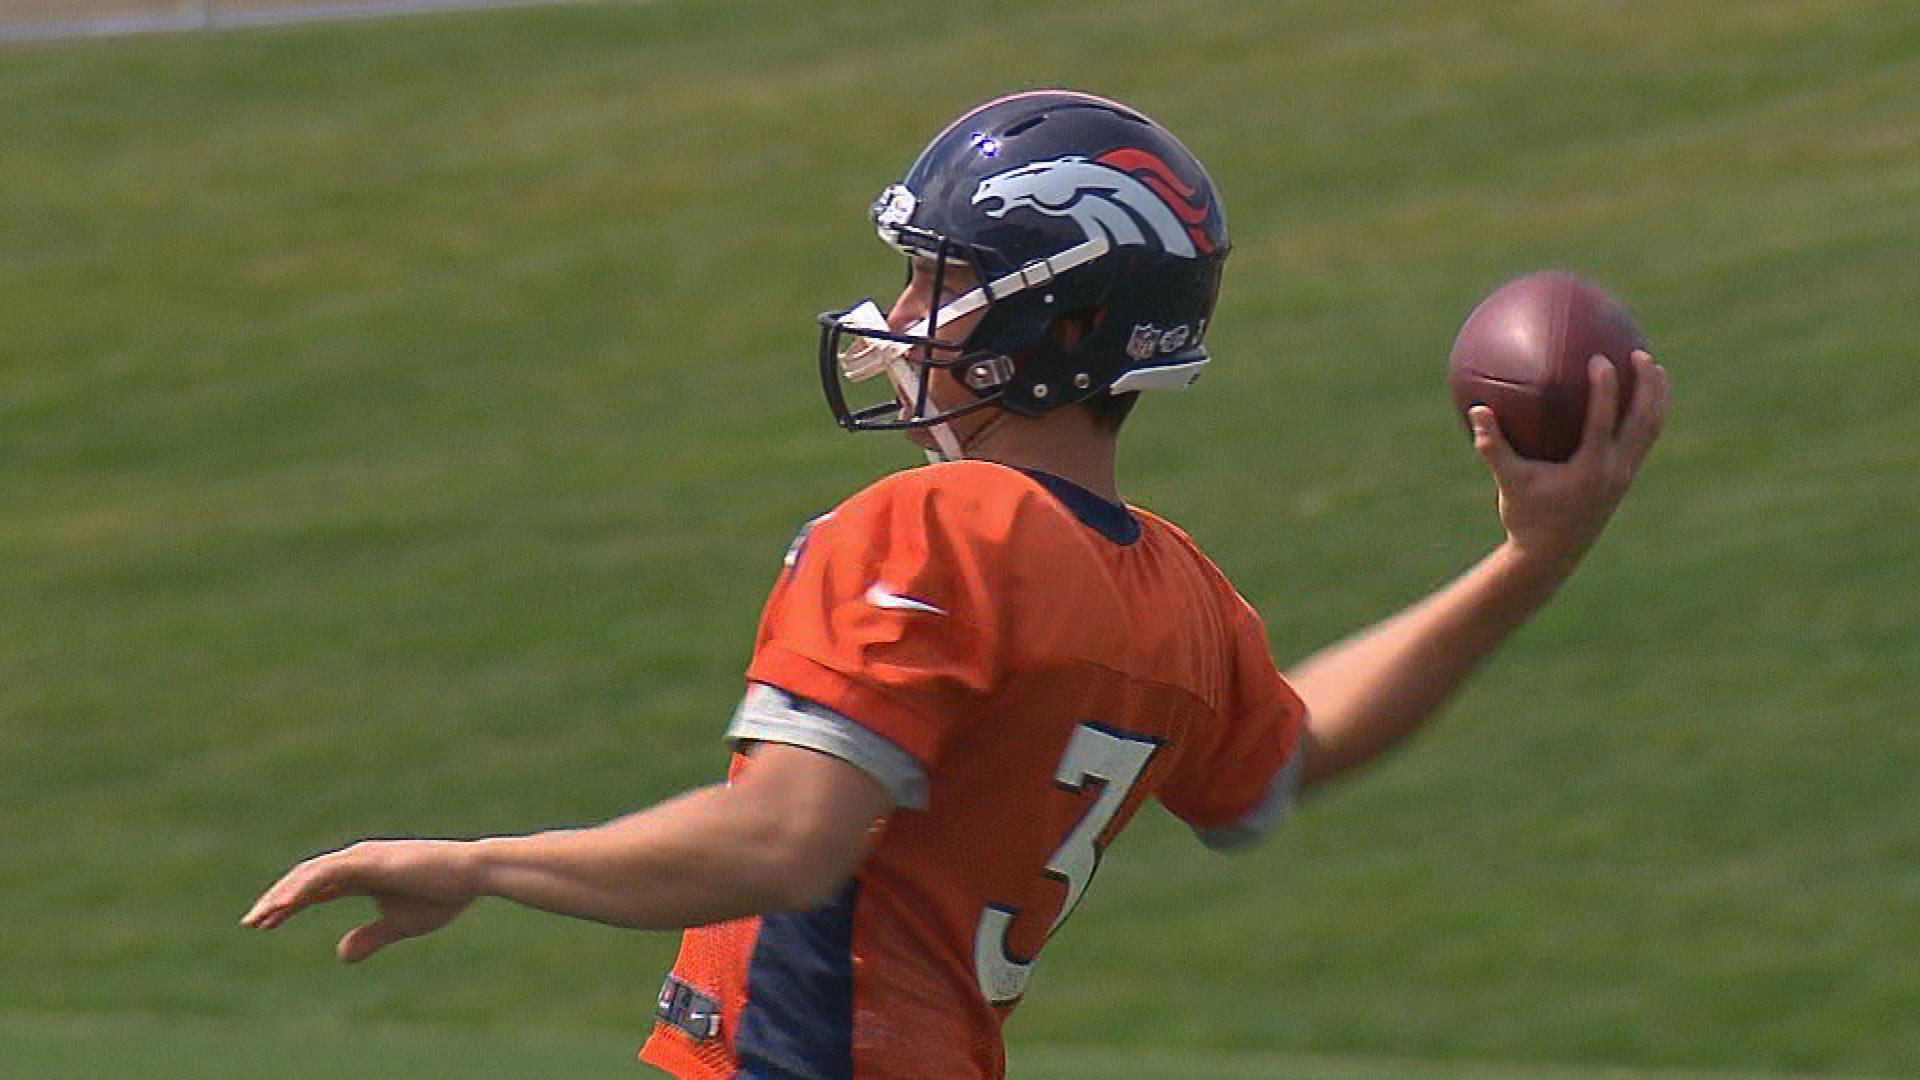 Trevor Siemian at practice on Monday (credit: David Wille)